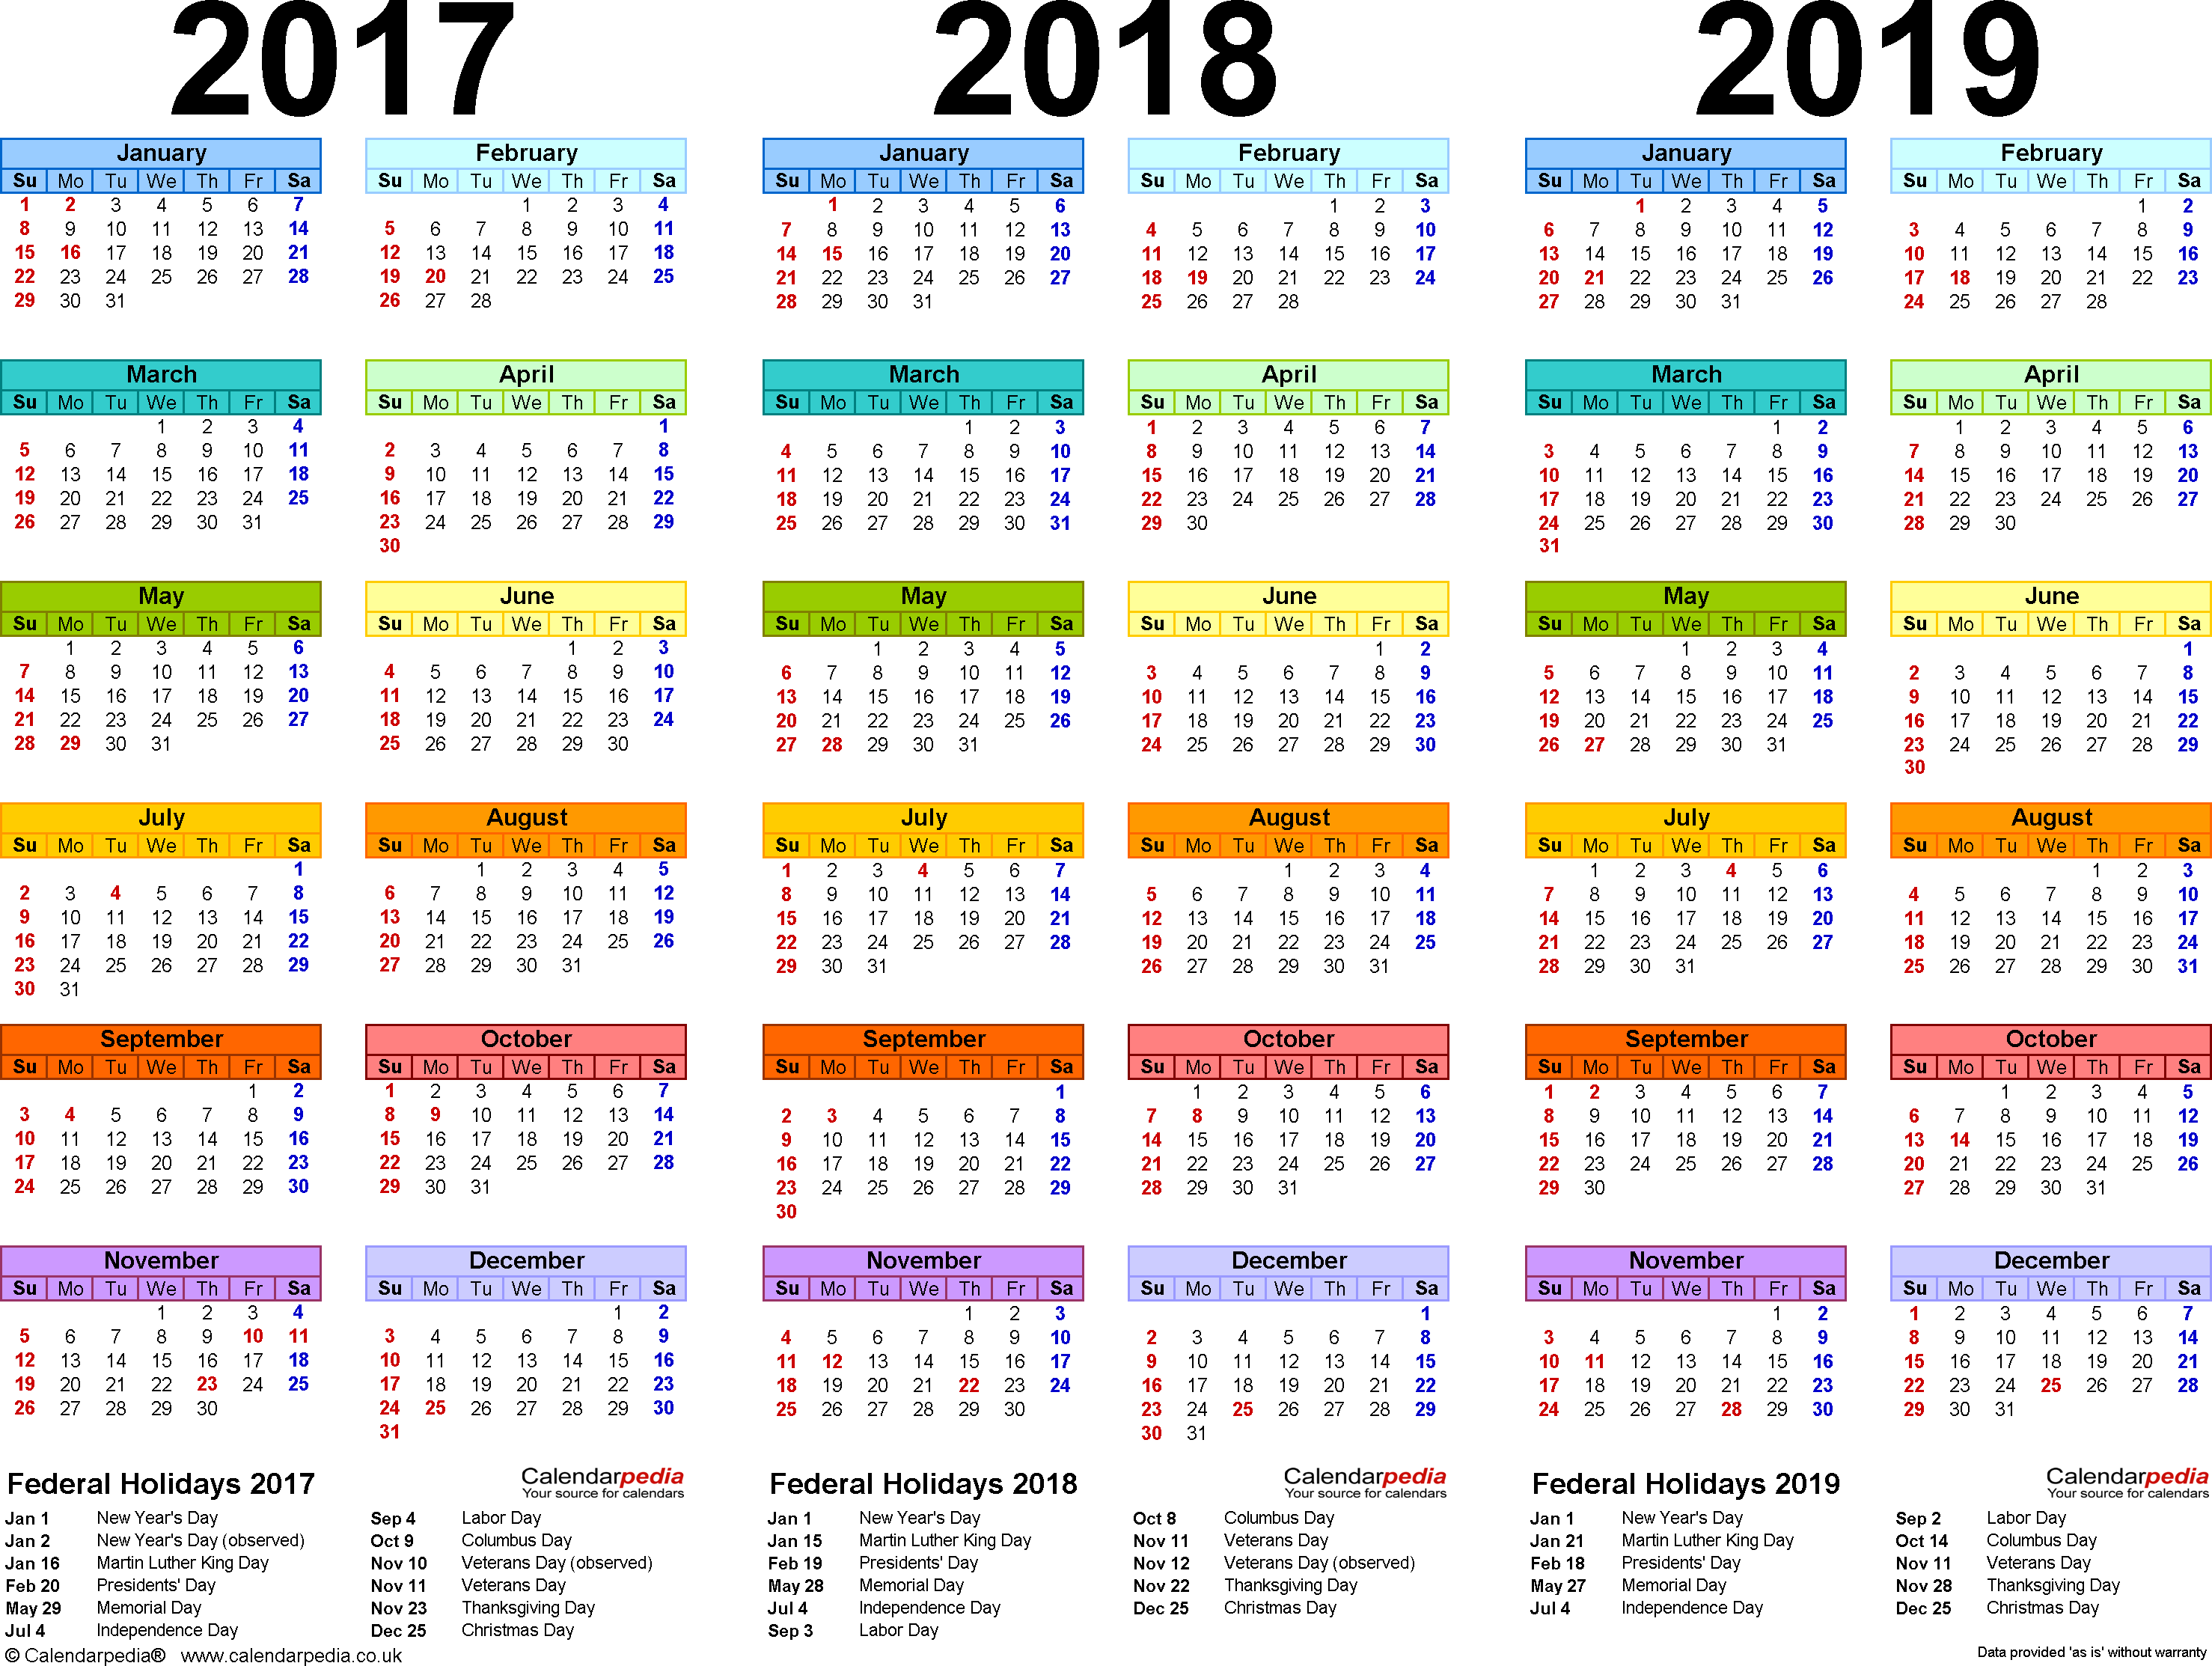 Template 1: Word template for three year calendar 2017-2019 (landscape orientation, 1 page, in color)